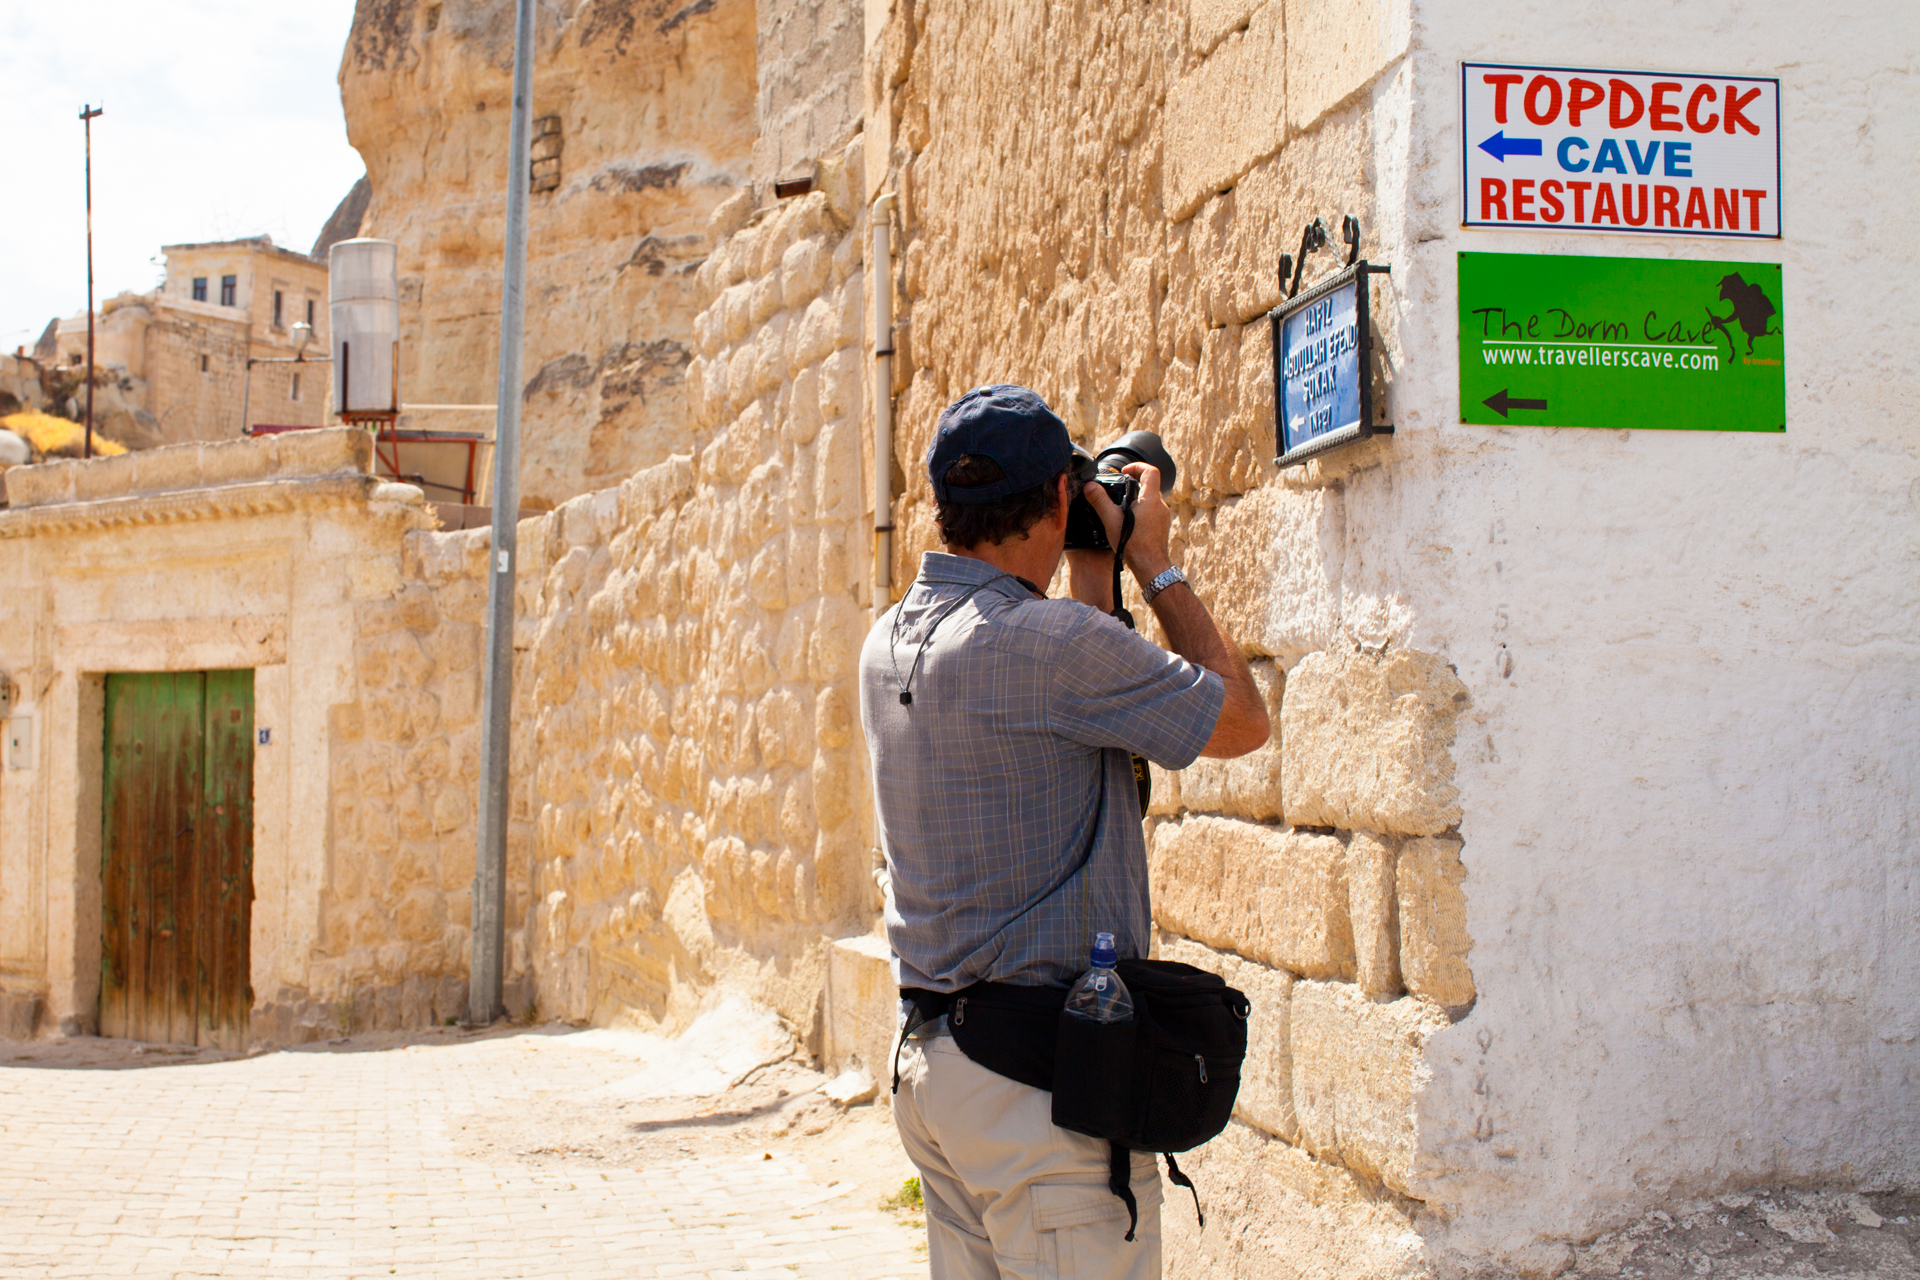 Man photographing a street sign